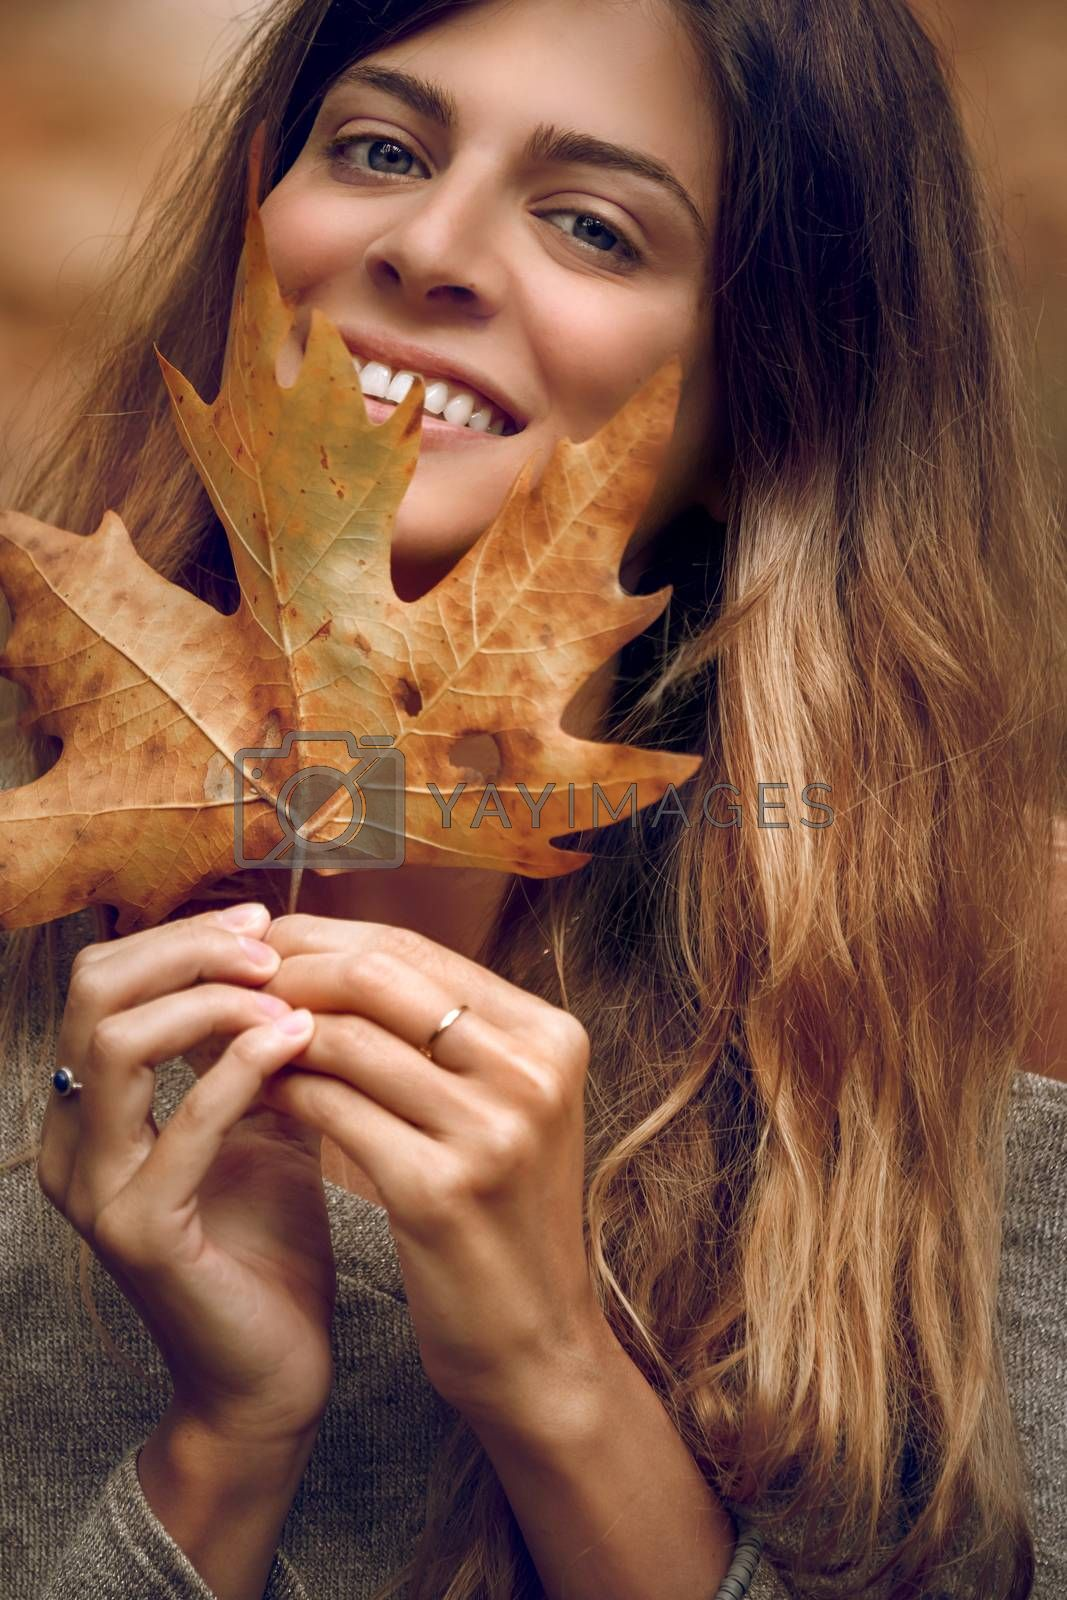 Portrait of a Beautiful Girl Having Fun in Autumn Forest. Holding Dry Maple Leaf. Beauty of Fall Season